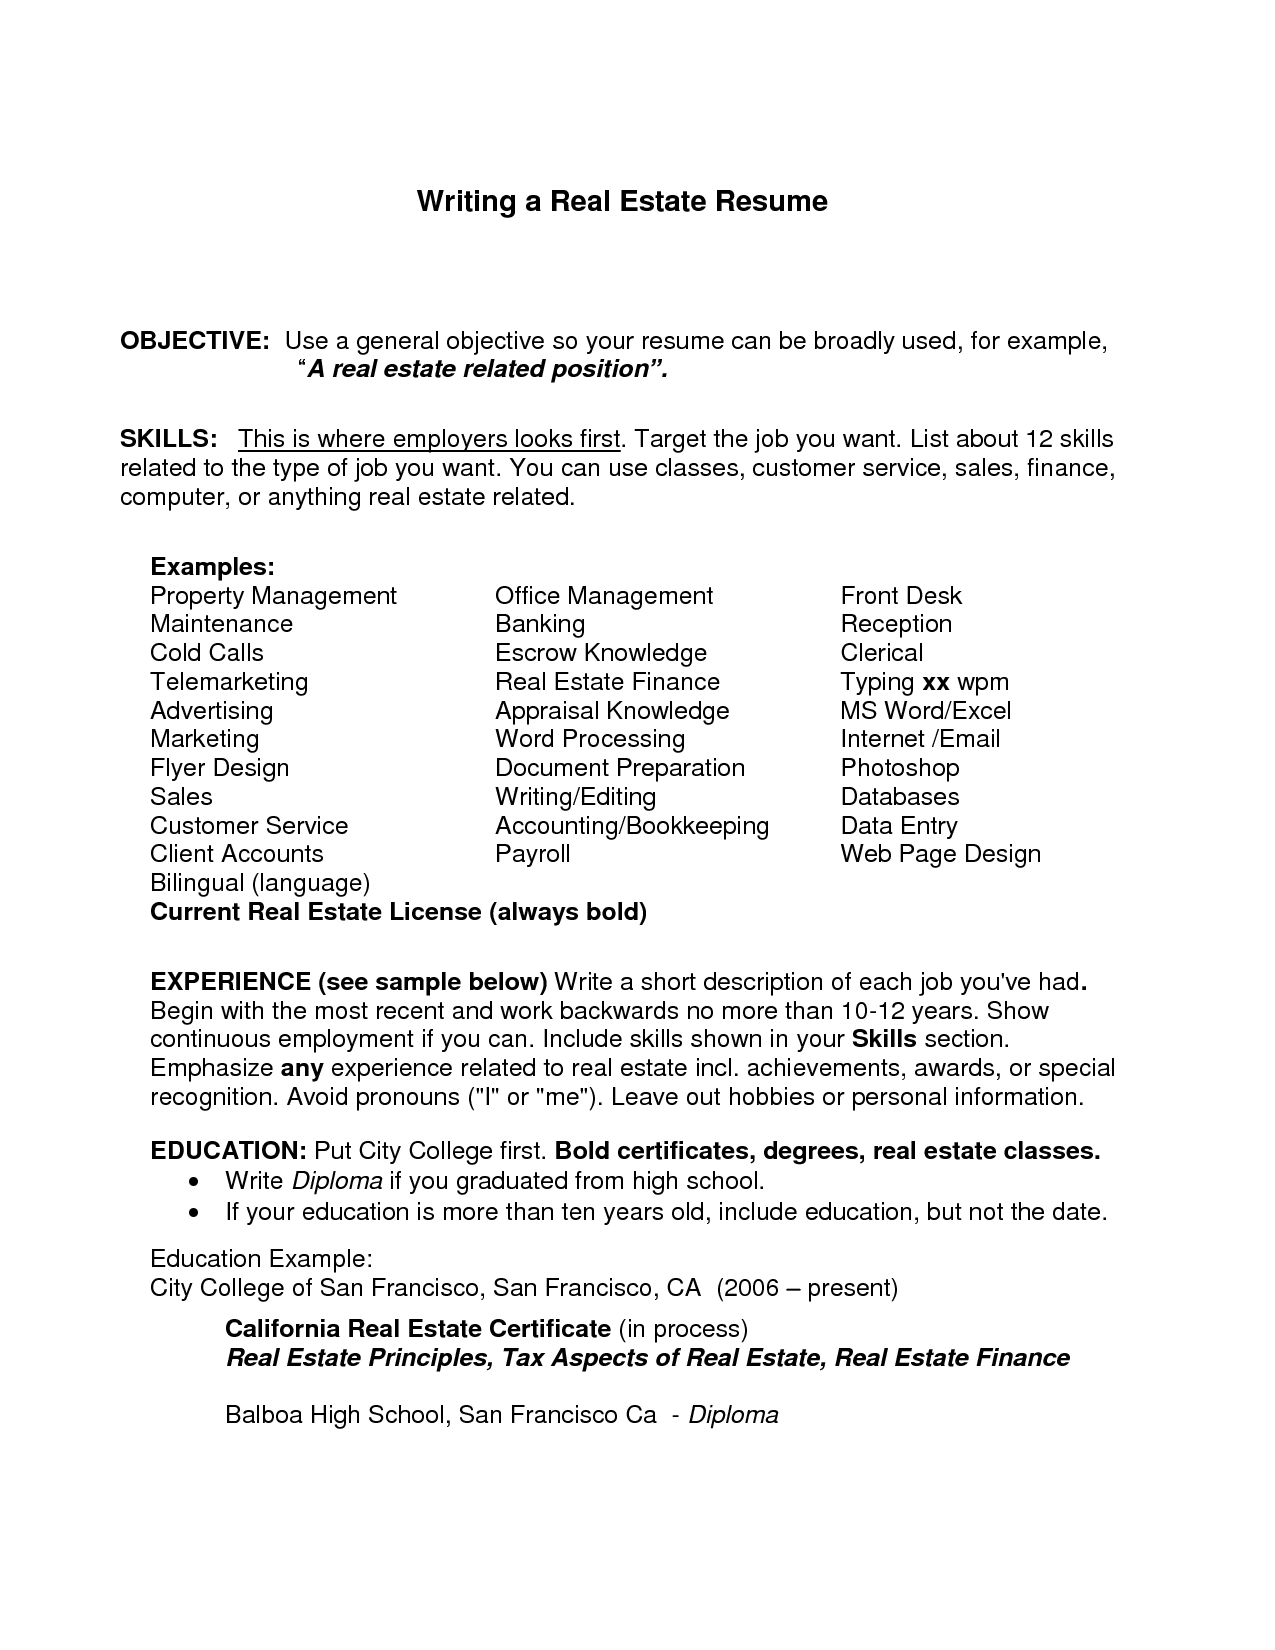 10 Famous Job Ideas For 14 Year Olds writing a resume objective sample http www resumecareer 2020